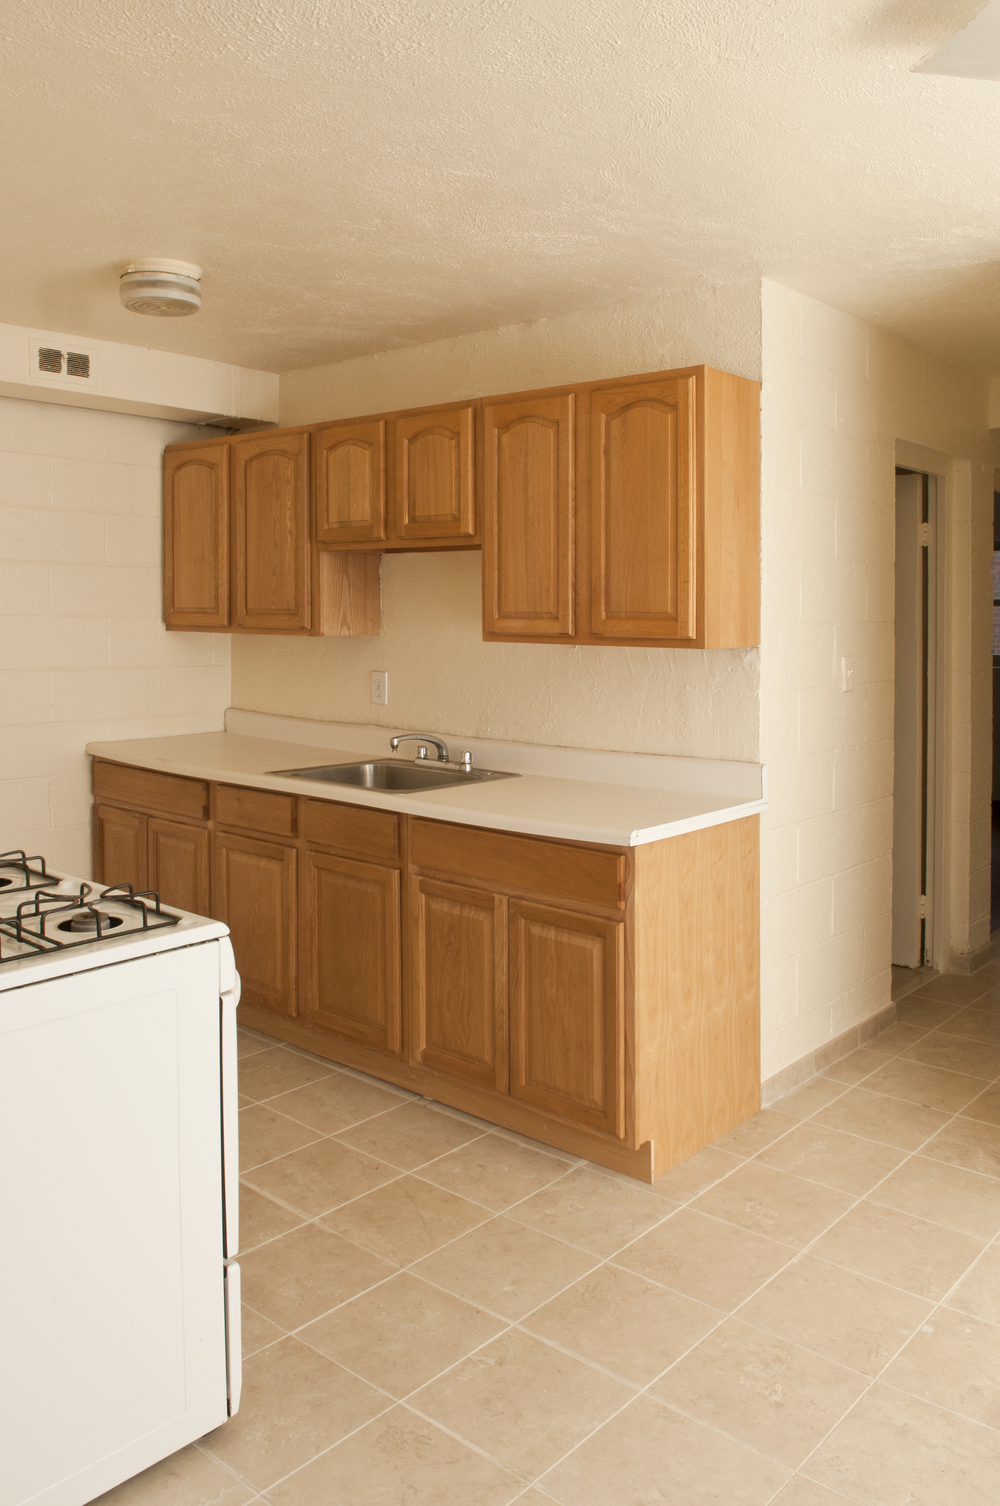 RiverviewGardens_Kitchen.jpg